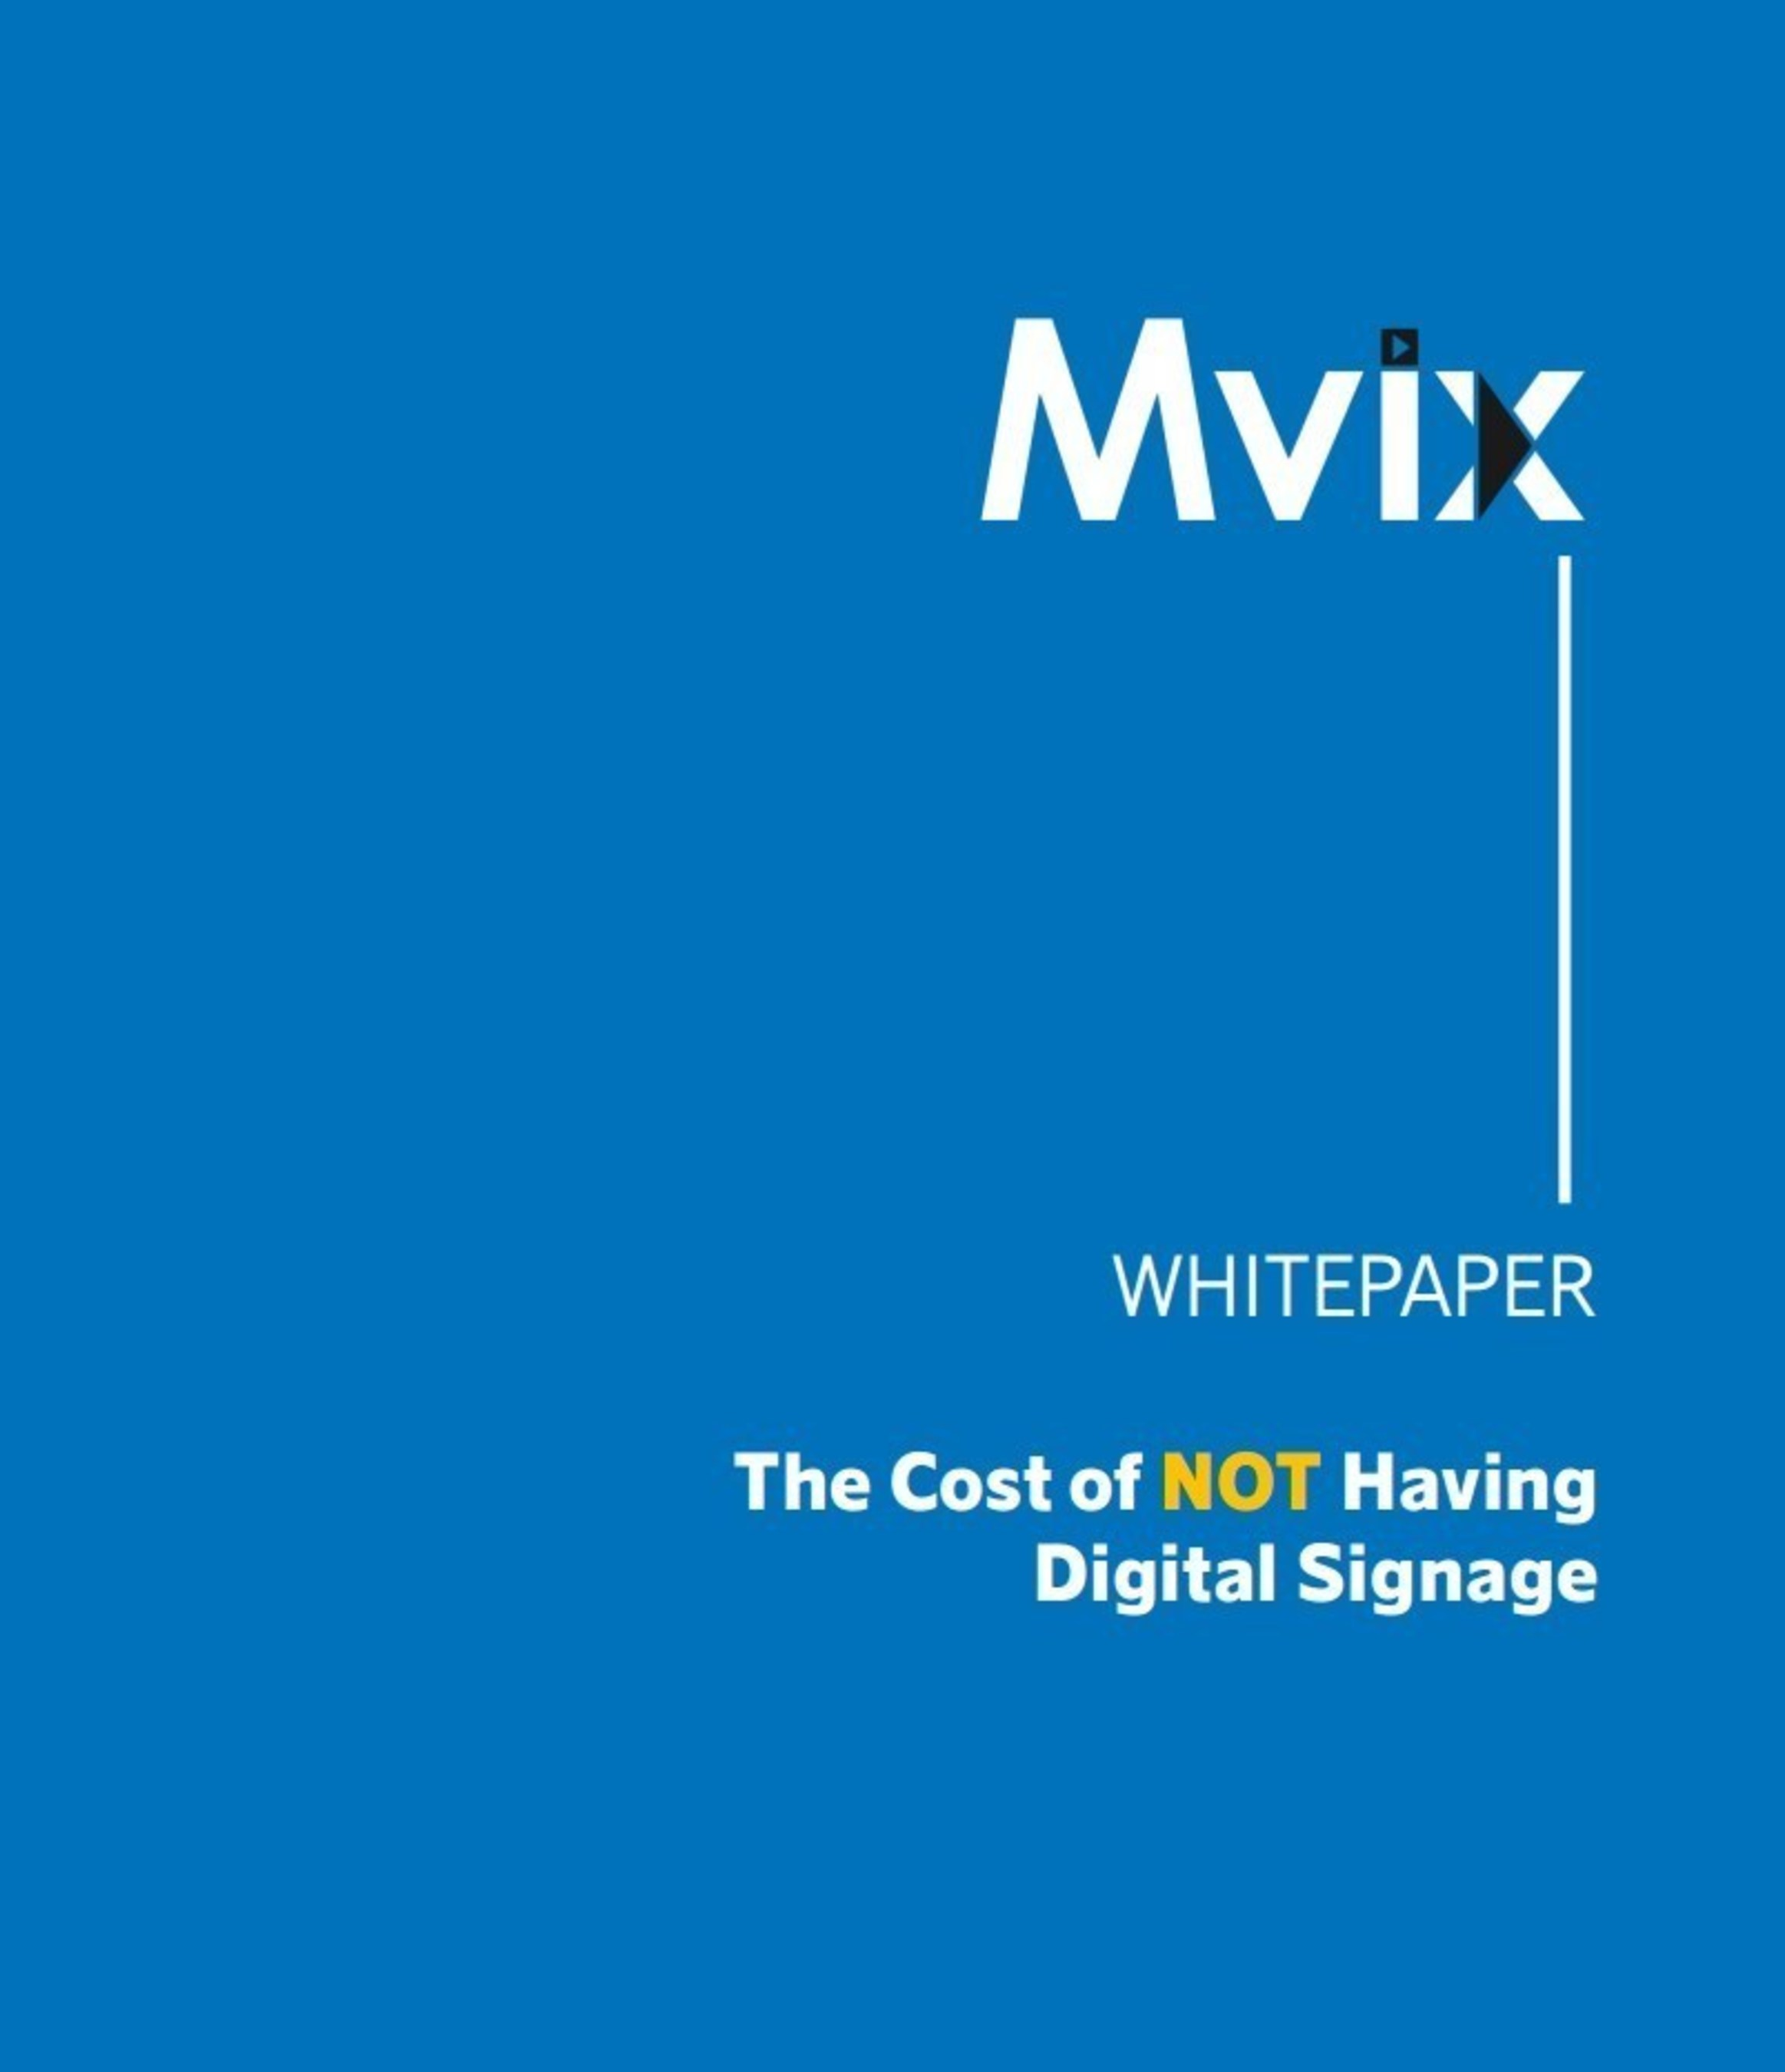 New Thought Leadership Paper Discusses The Cost of Not Having Digital Signage